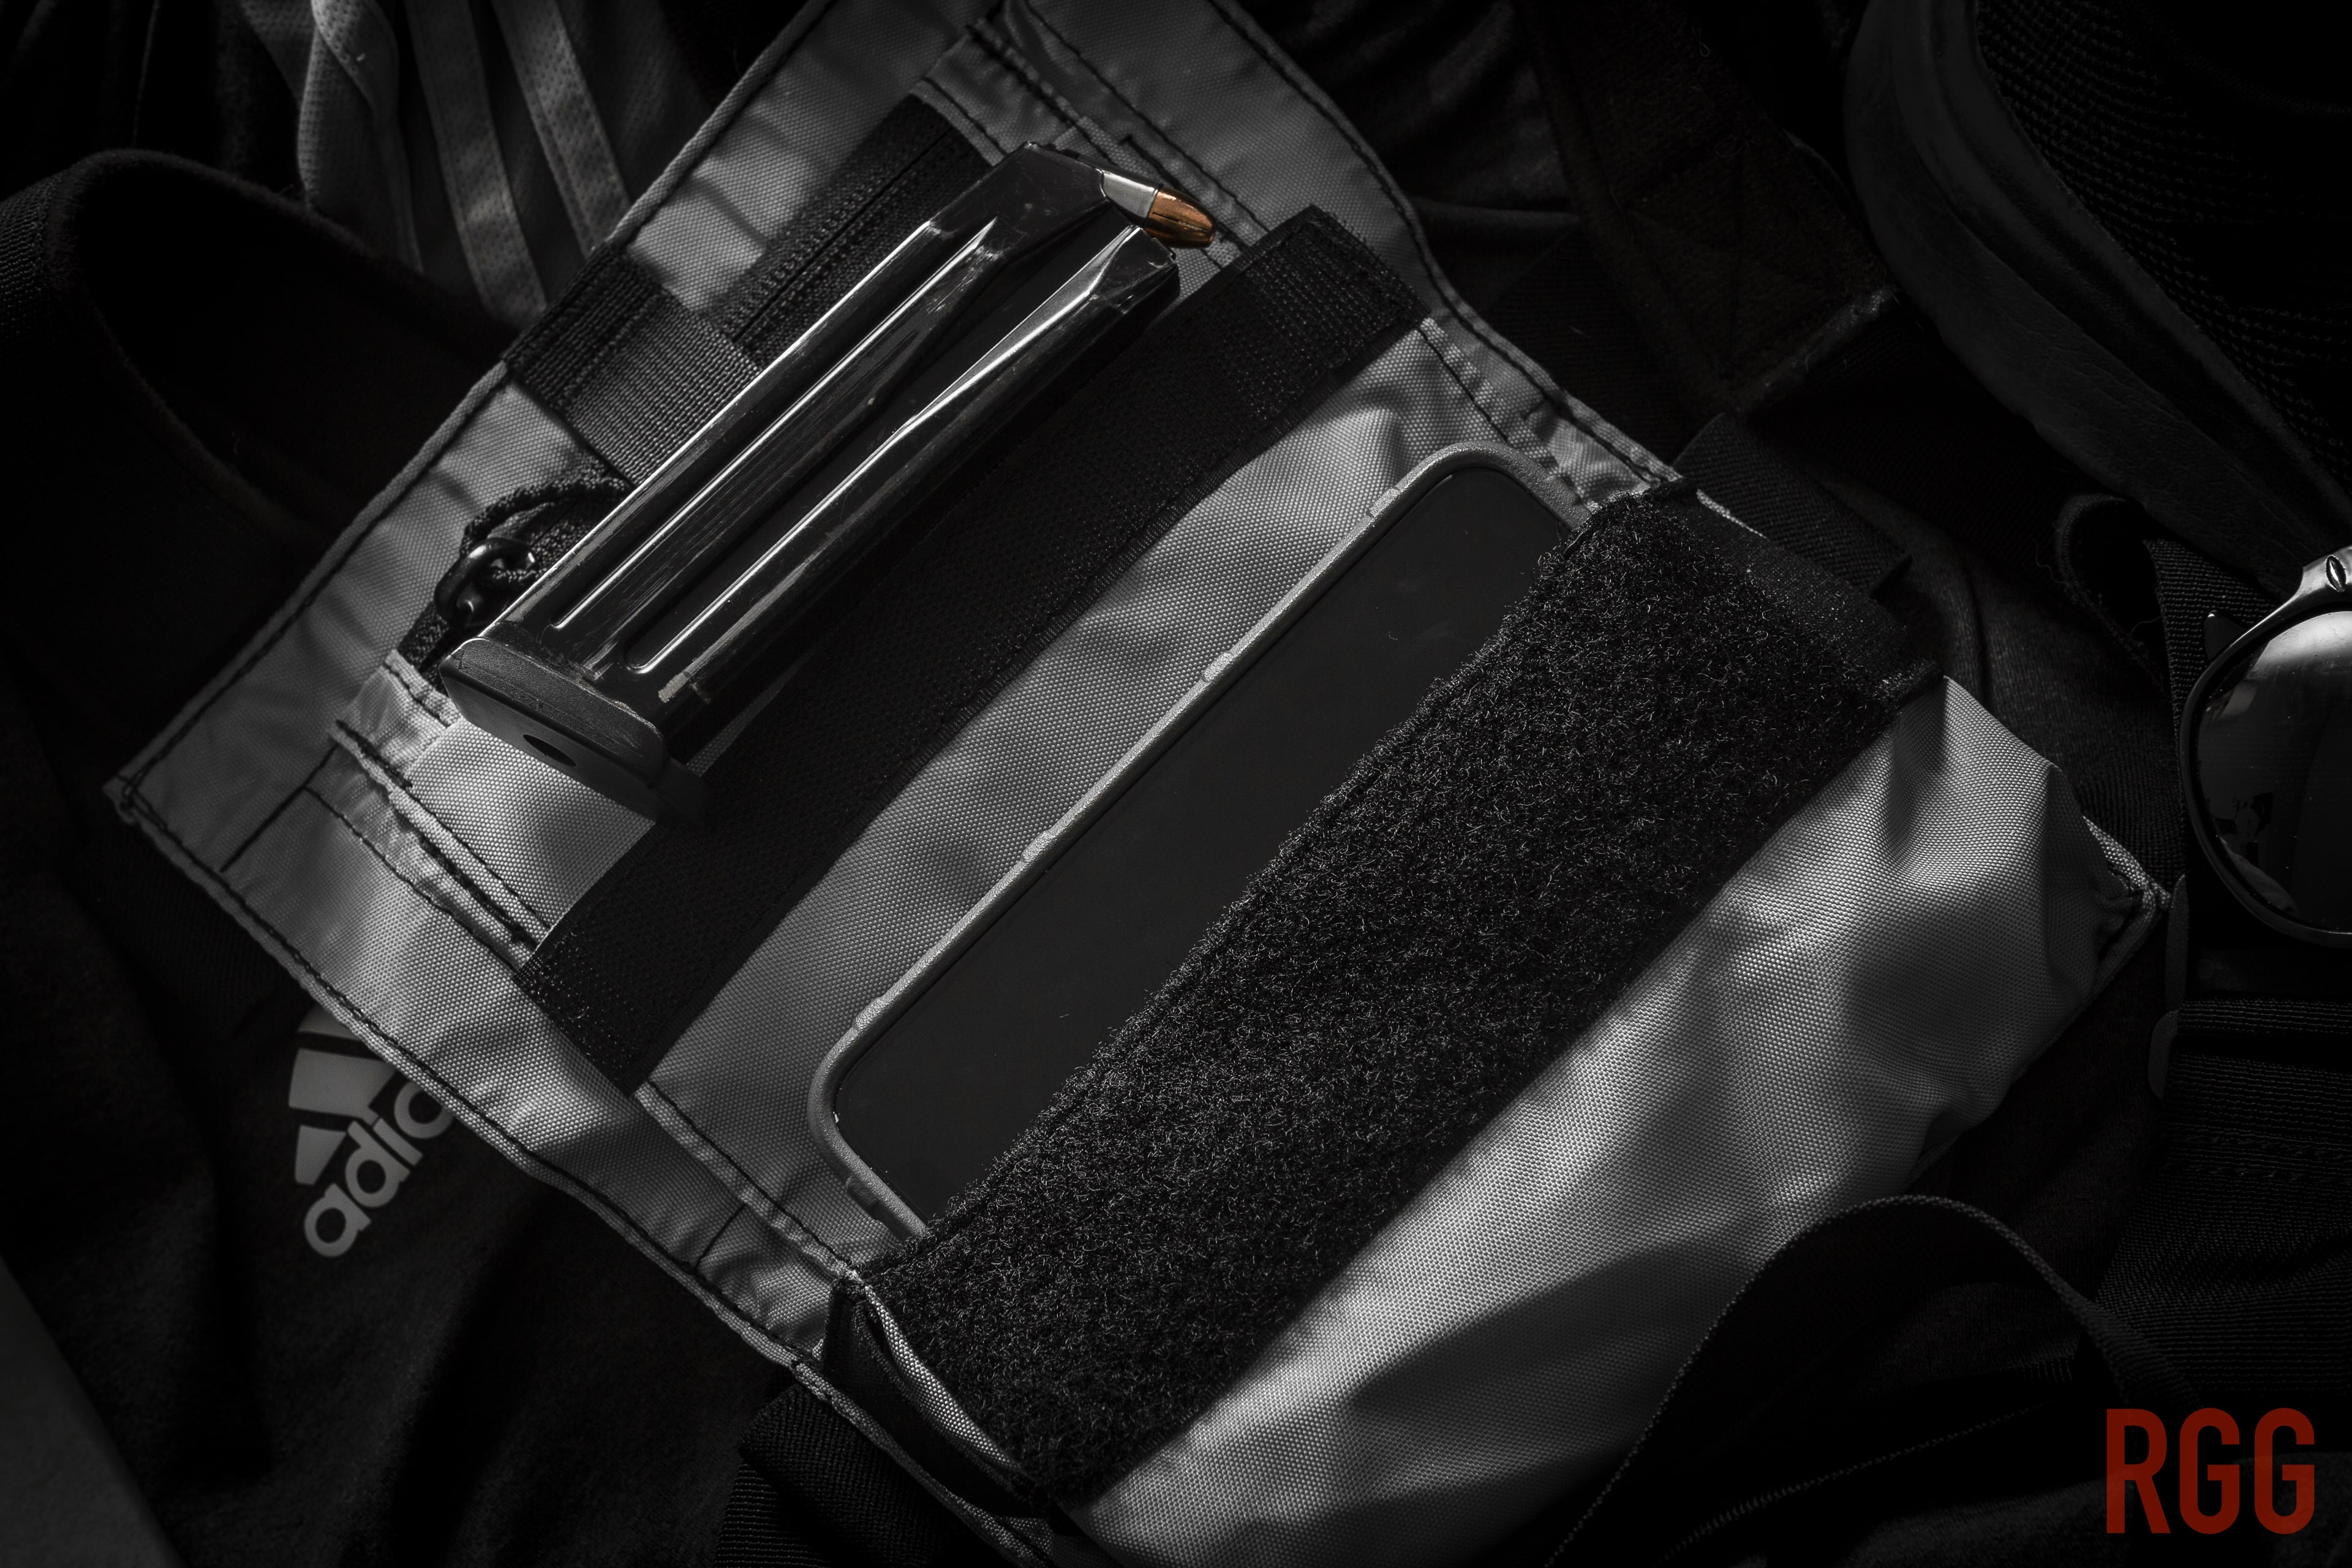 The Runner's Rig smartphone pocket can hold a smartphone, or maybe a spare magazine for your gun.